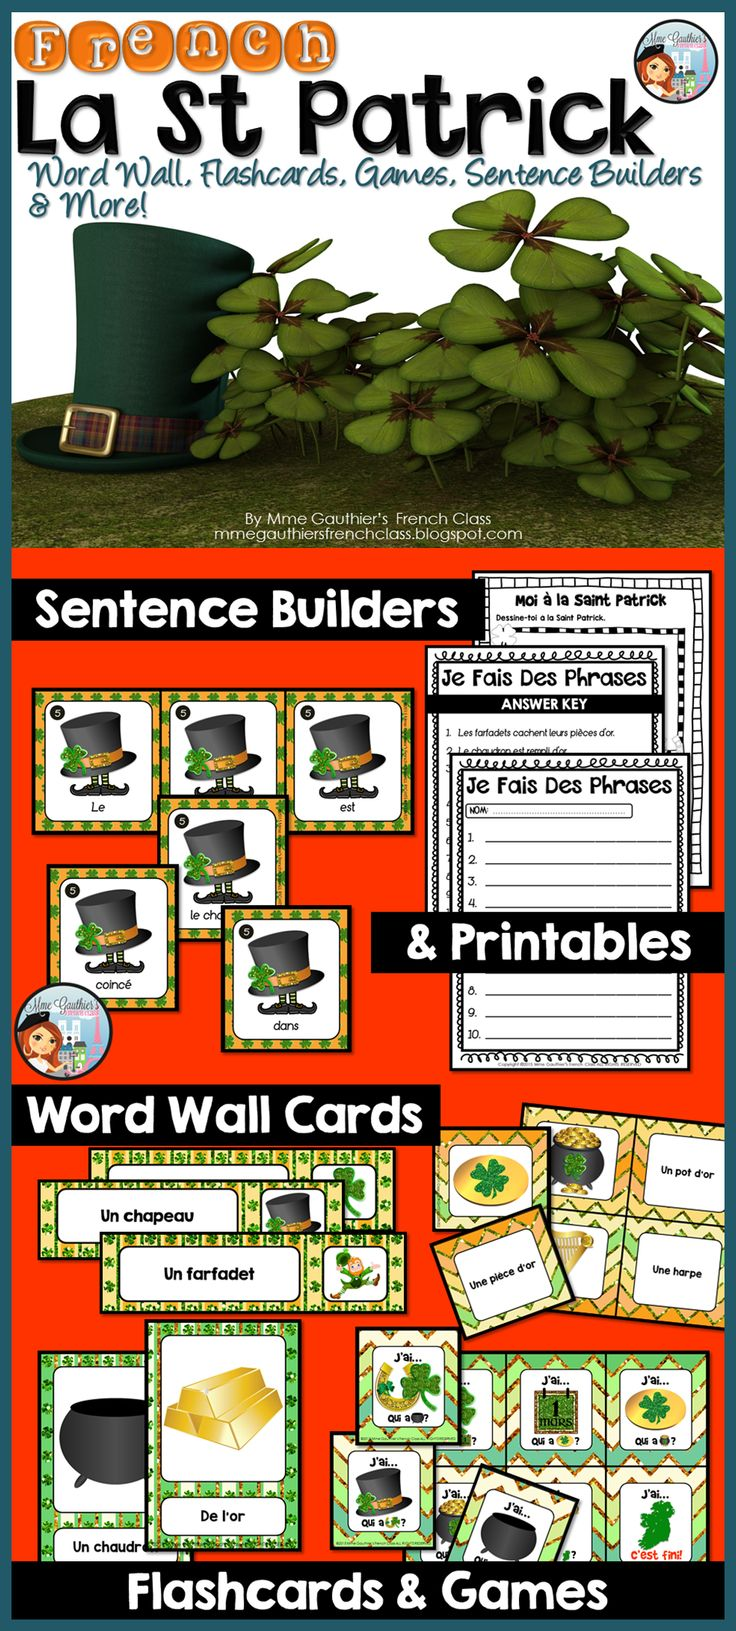 Mme Gauthier's French Class | La St Patrick: Word Wall, Flashcards, Sentence Builders, Games & More!